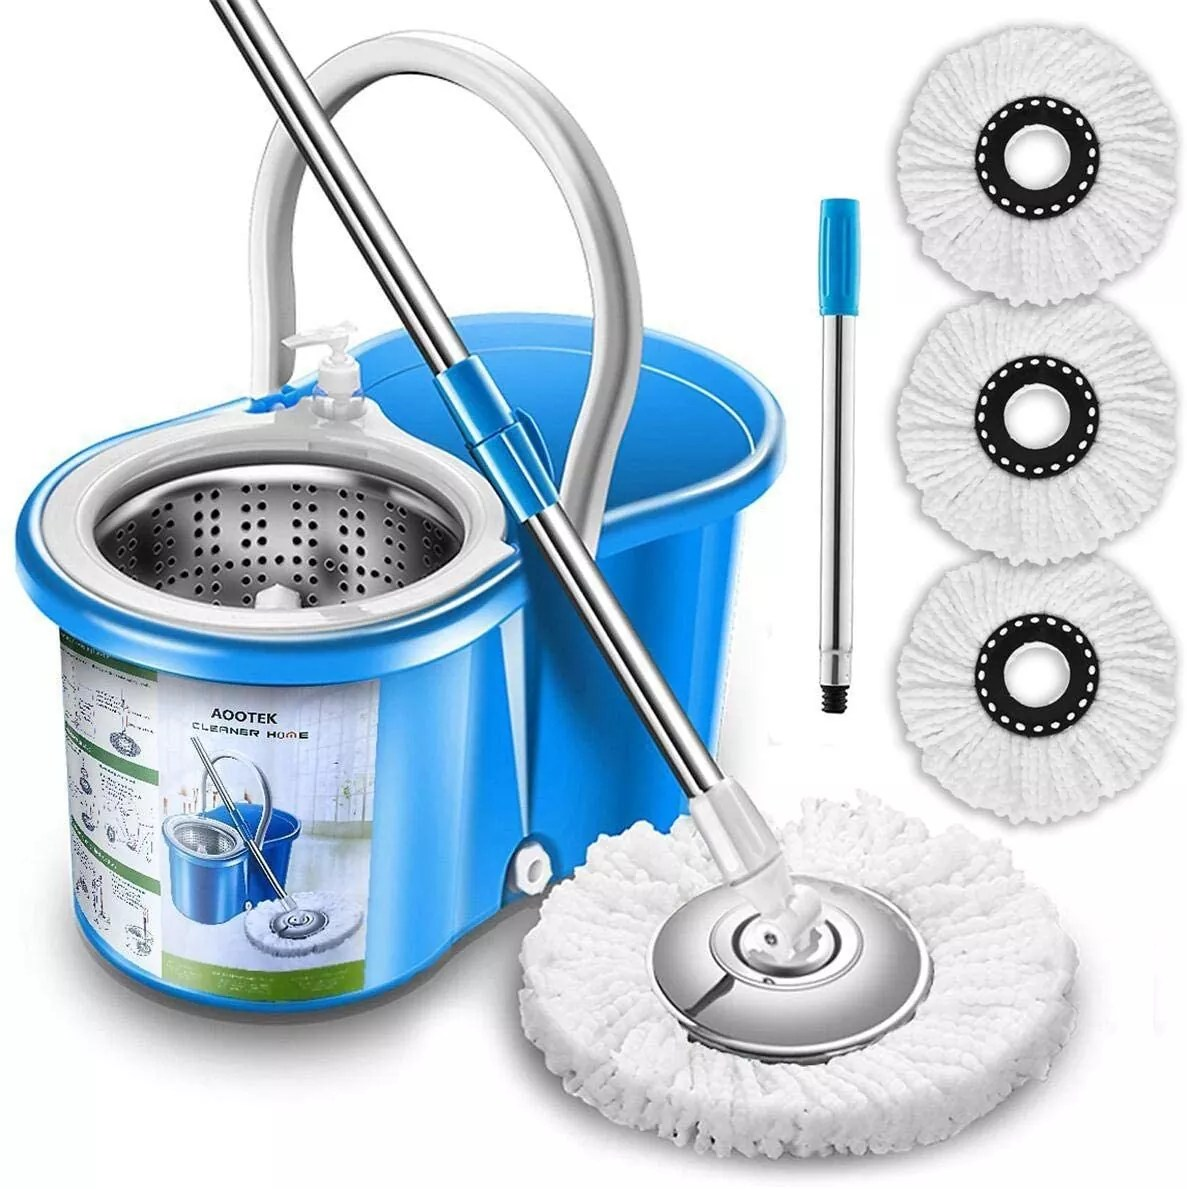 Aootek Upgraded Stainless Steel Deluxe 360 Spin Mop